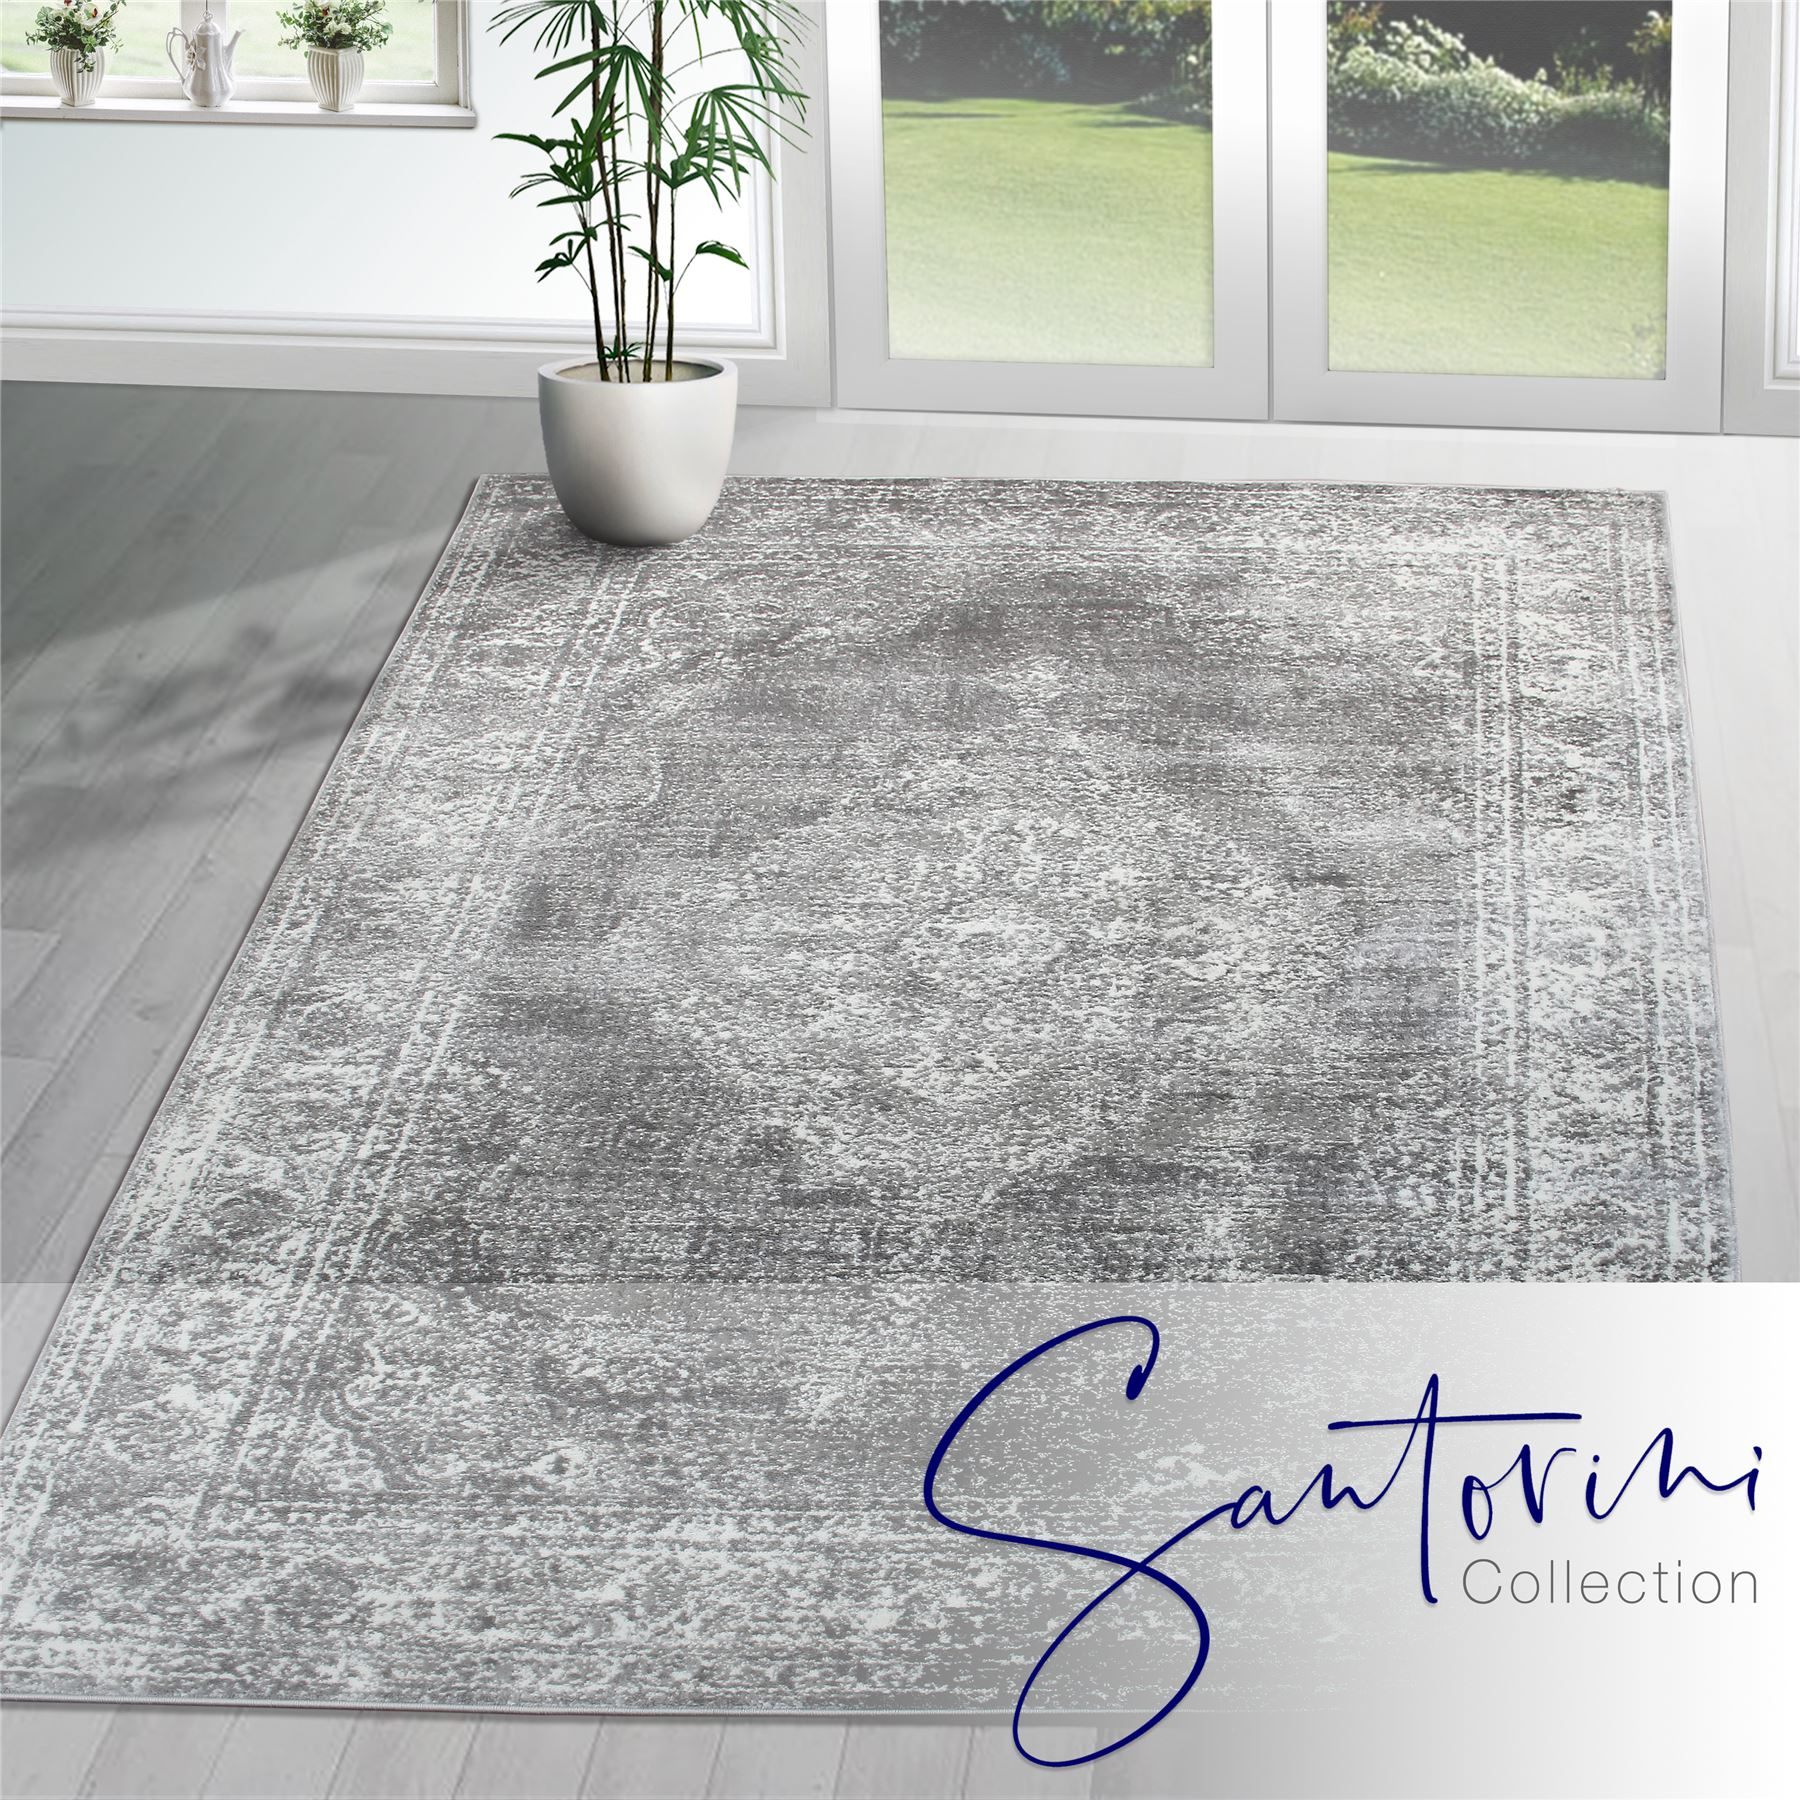 Details About A2z Rug Oriental Medallion Living Room Floor Area Carpets Classic Modern Rugs